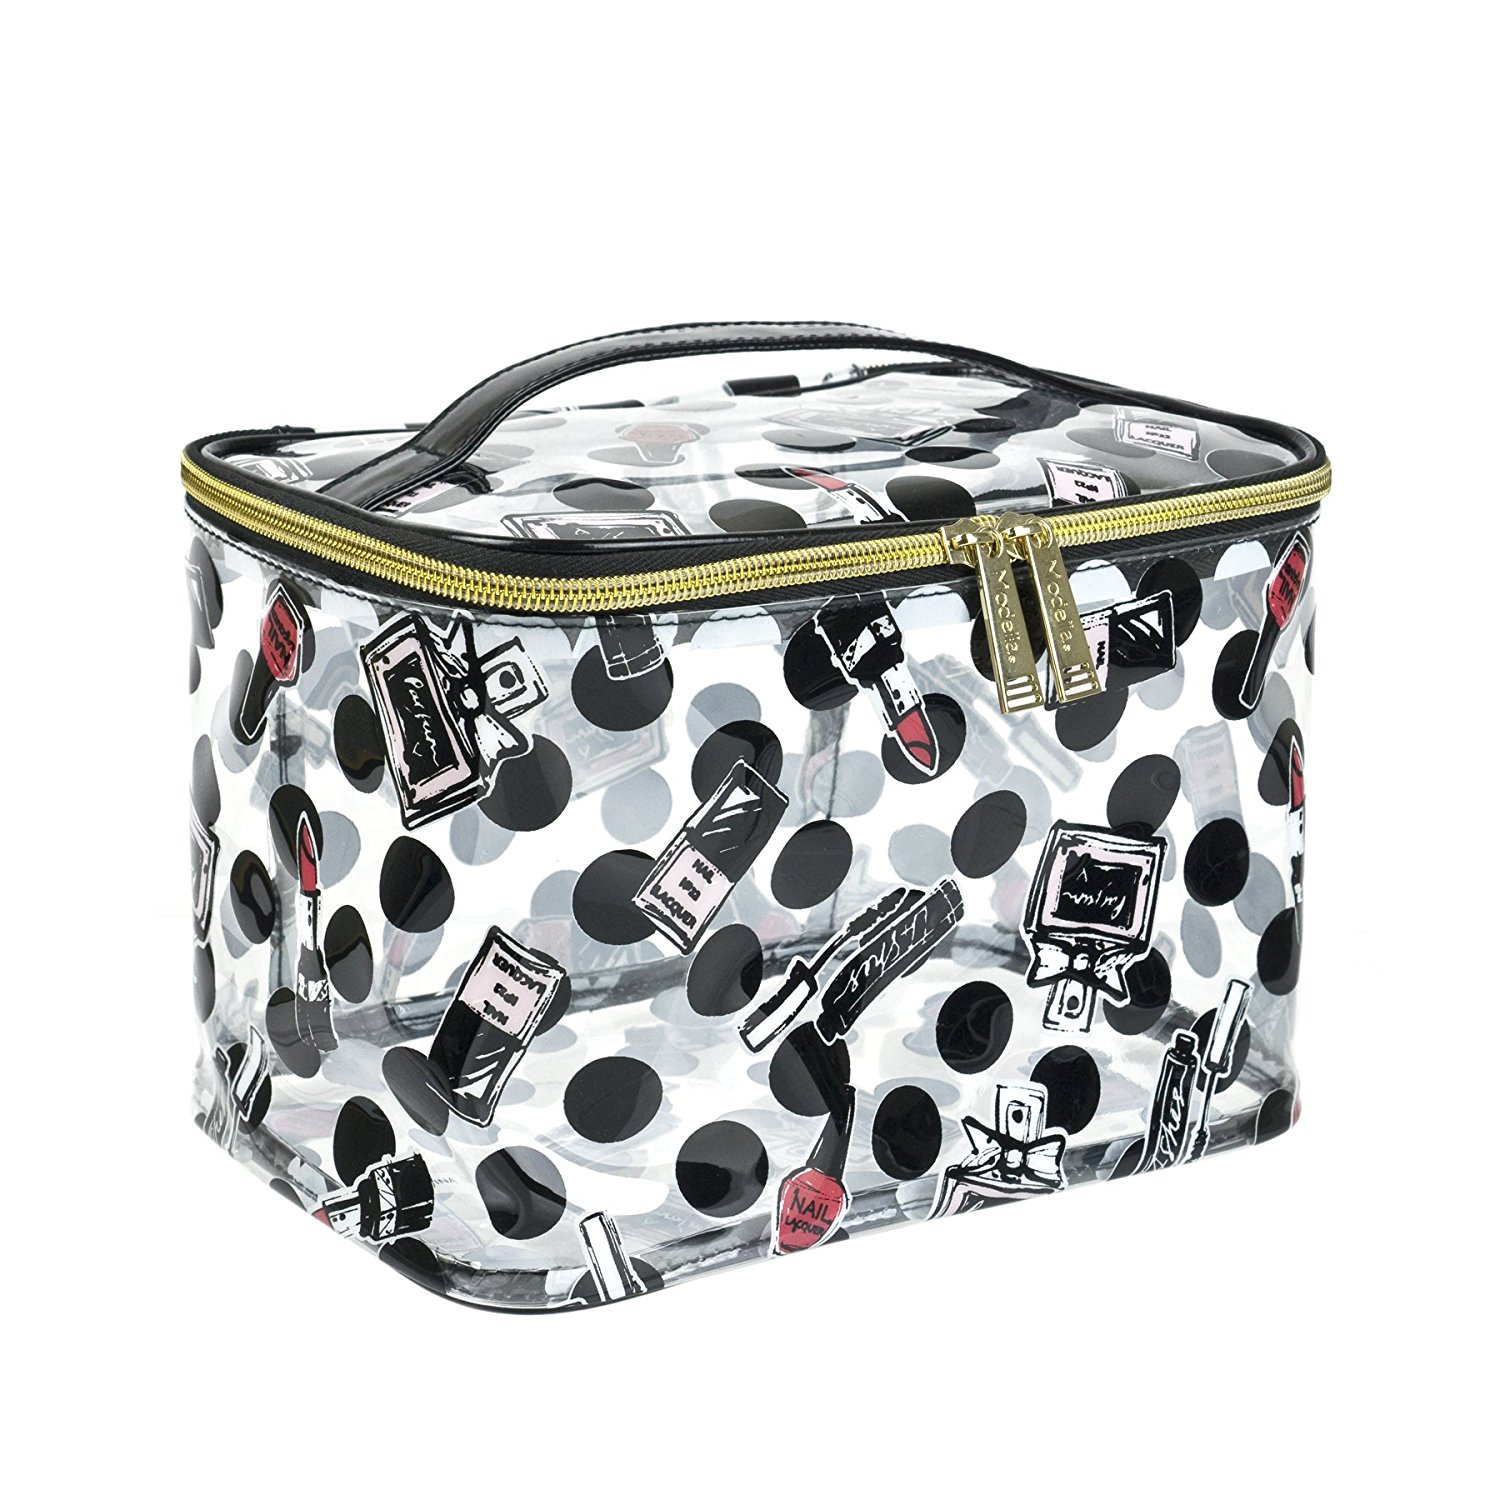 6c1d68a44c Get Quotations · Modella Clearly Make Up Collection Train Case Cosmetic Bag